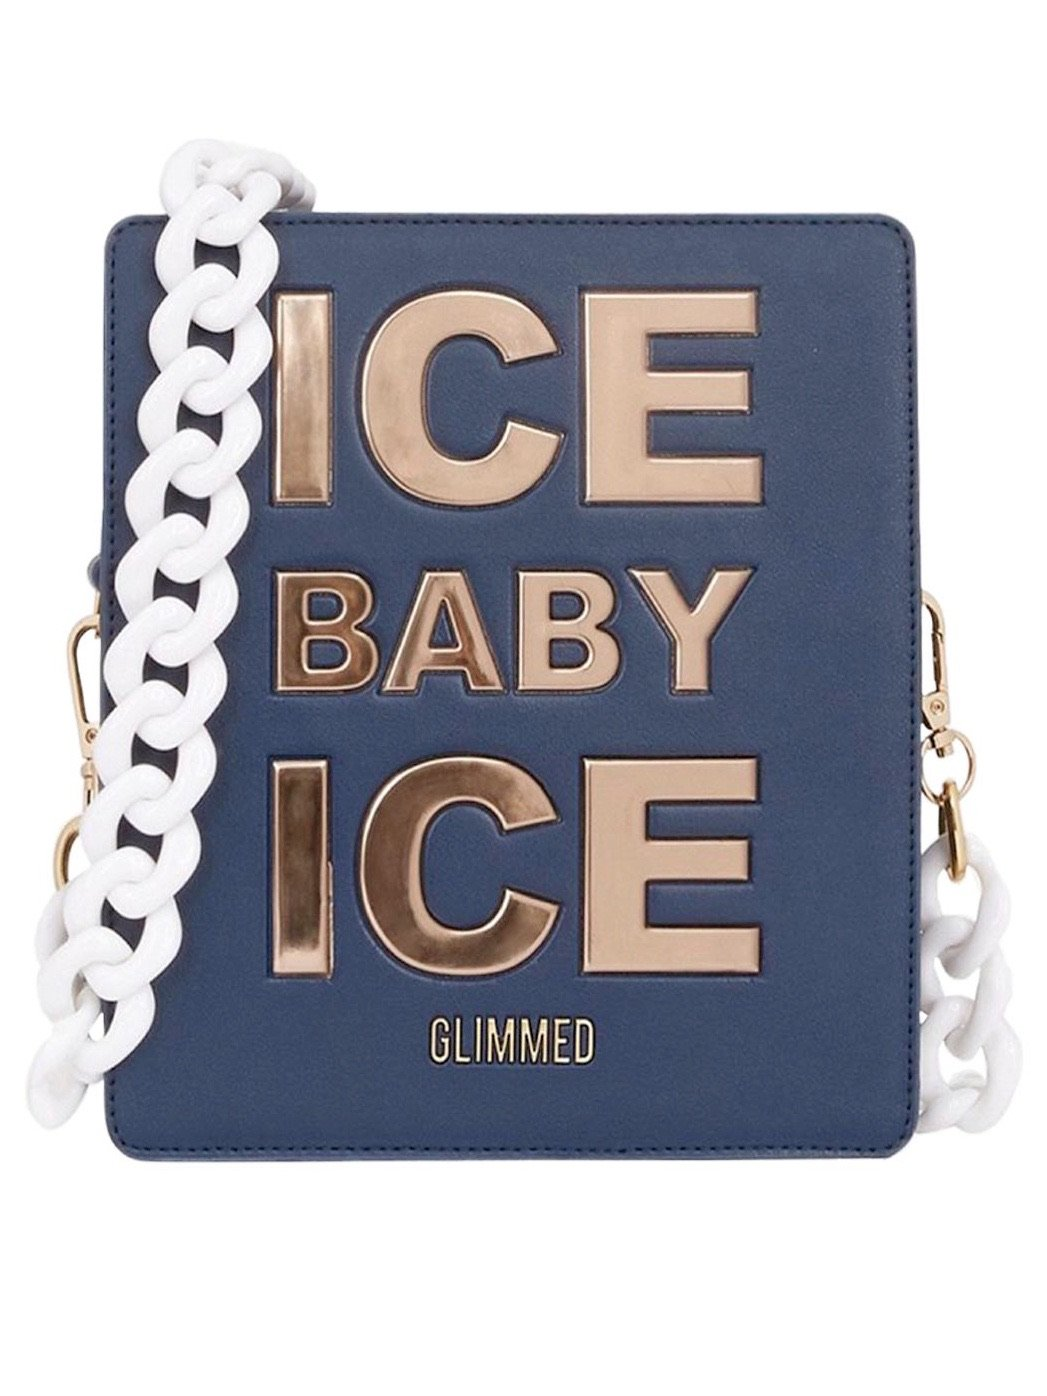 Squared Ice Baby Ice Bag - The Bobby Boga